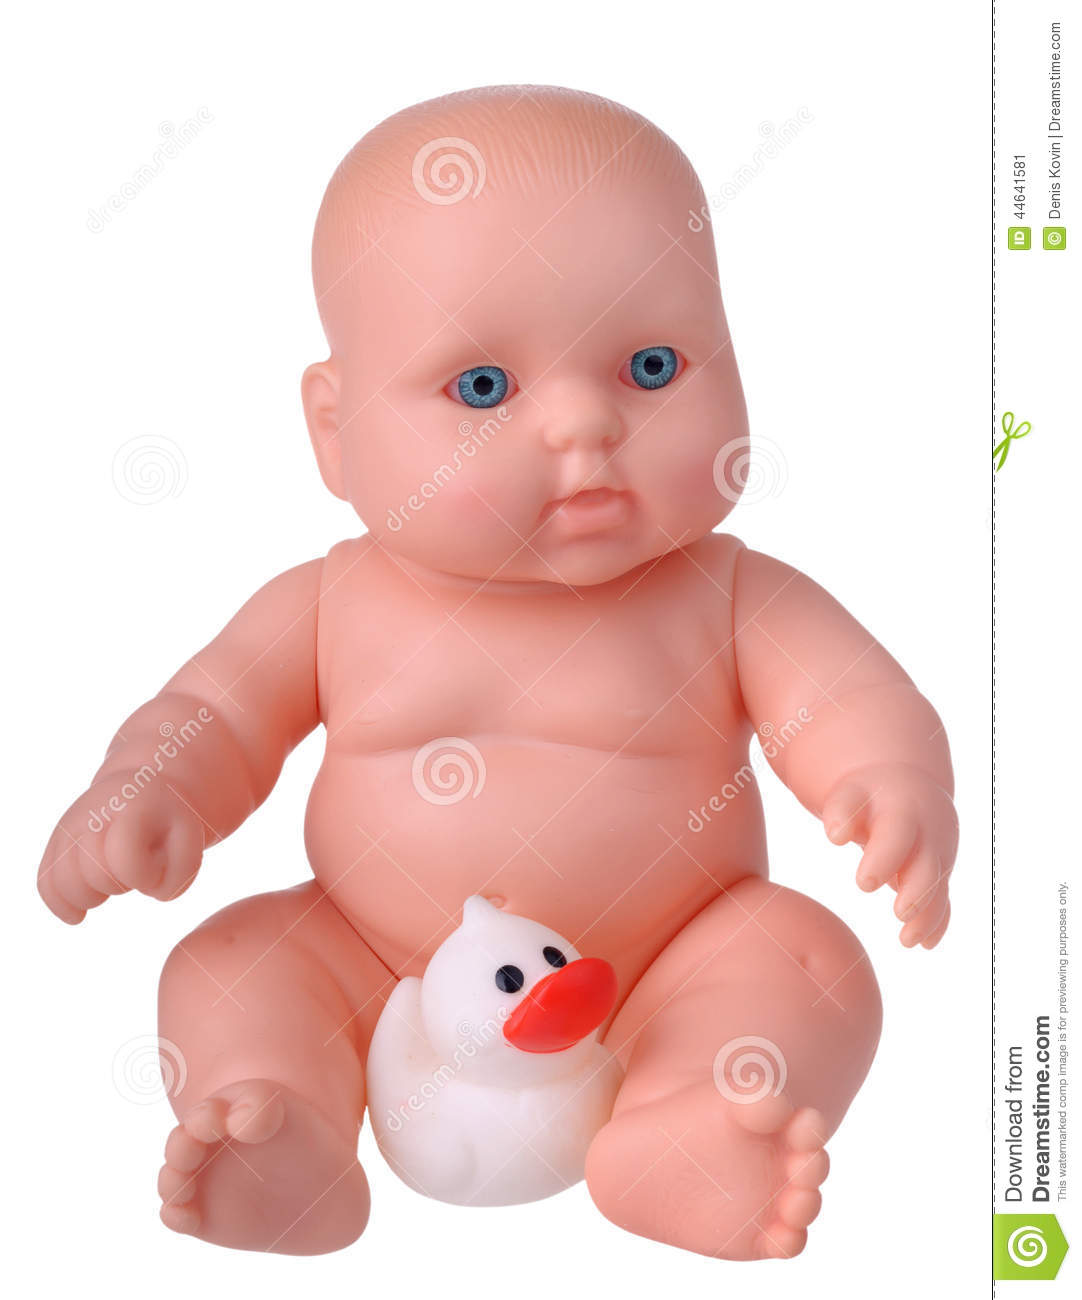 Plastic Baby Doll With Rubber Duck Stock Photo  Image: 44641581